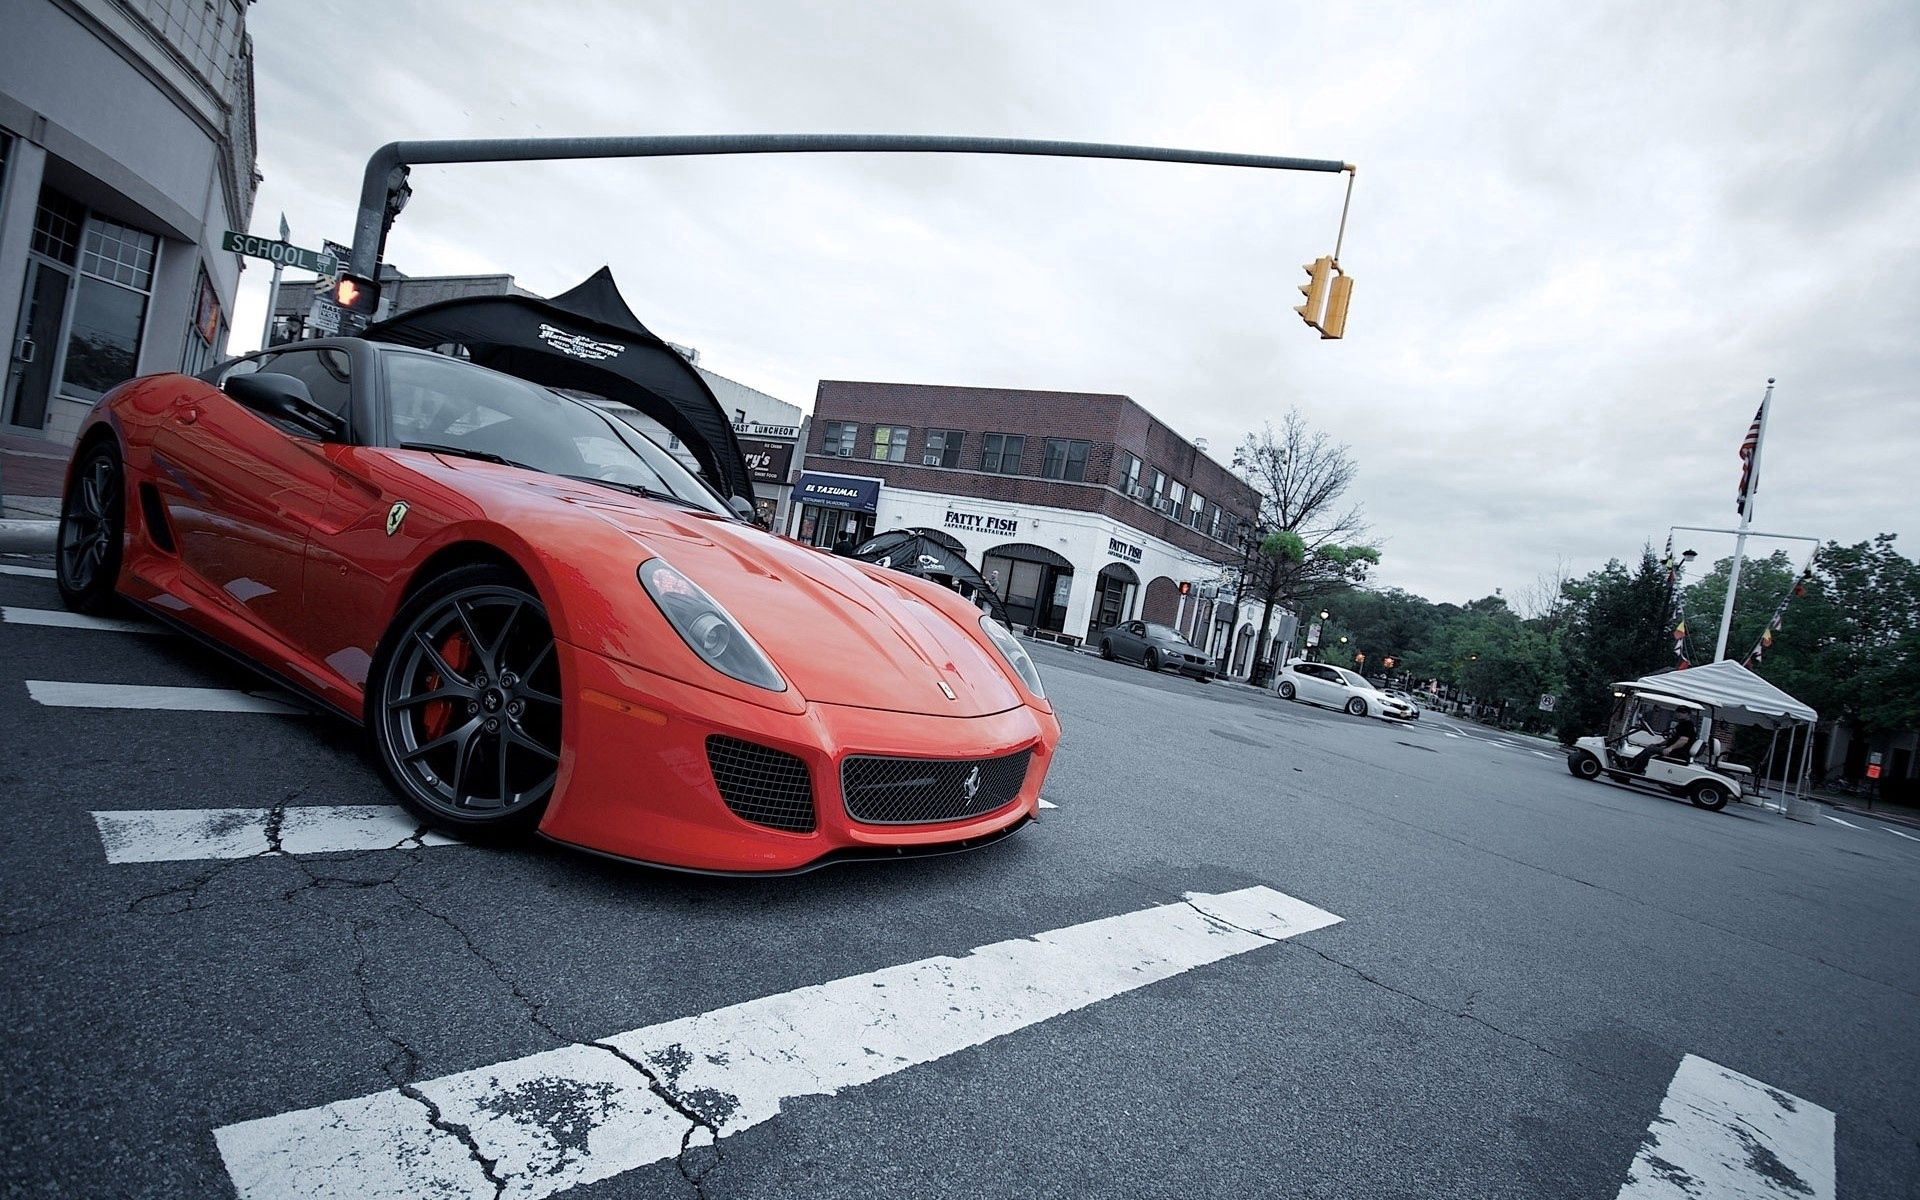 77915 download wallpaper Cars, Ferrari, Auto, City, Stylish screensavers and pictures for free